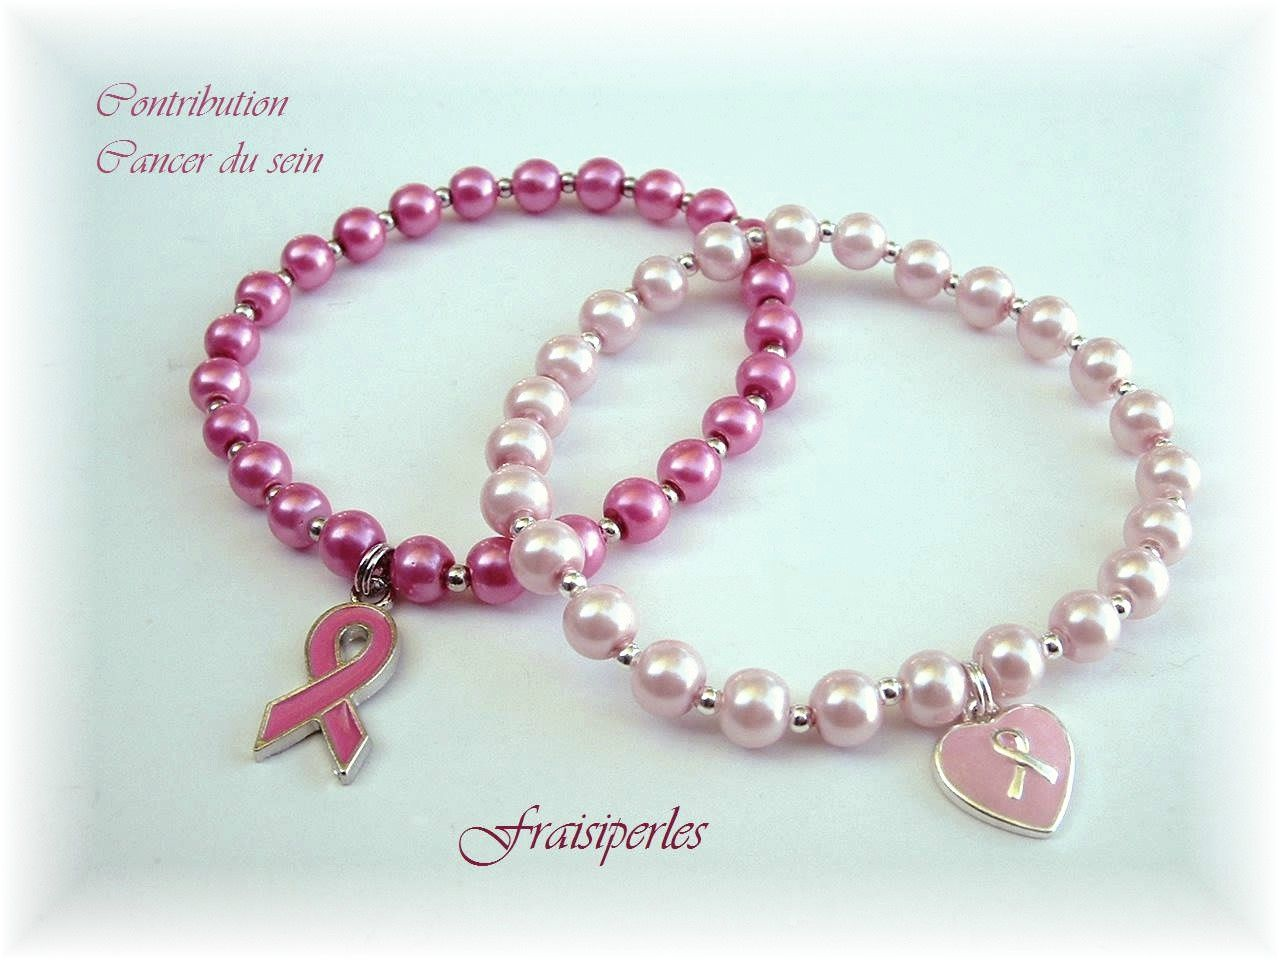 contribution cancer du sein bracelet